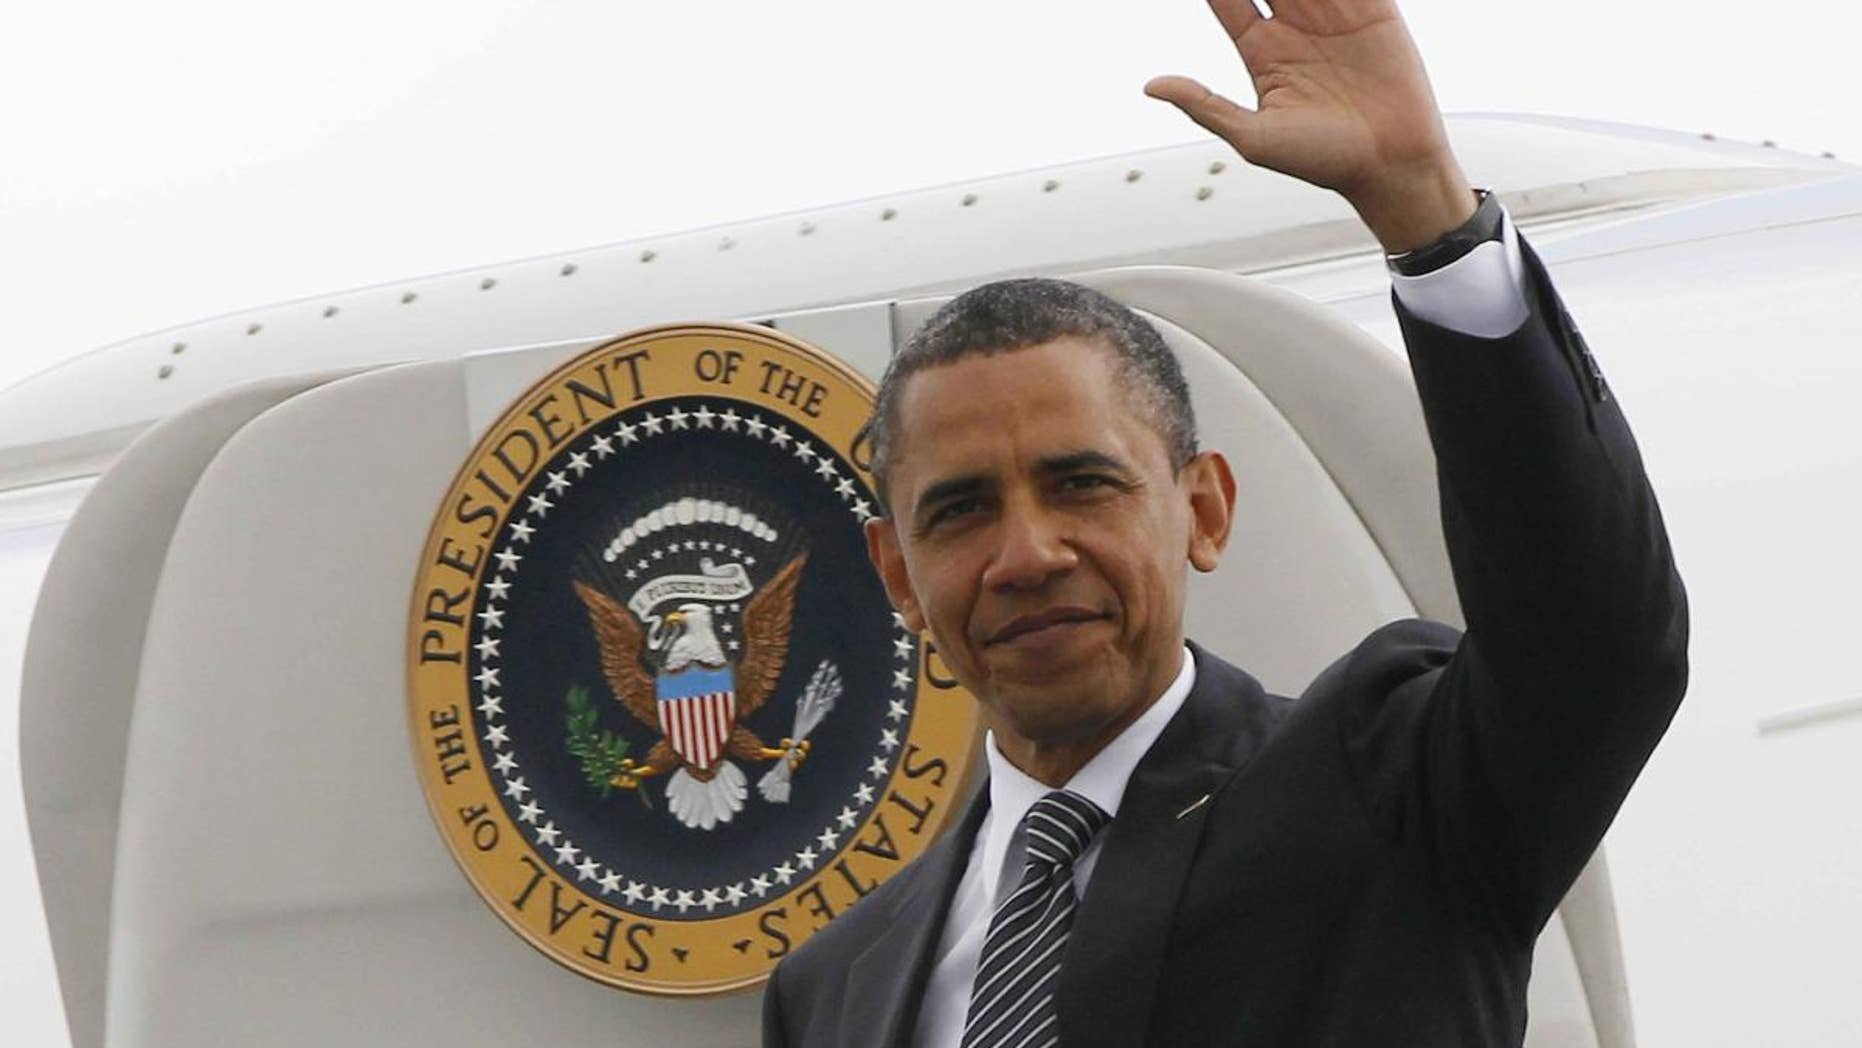 President Barack Obama steps off Air Force One in France. (AP Photo/Charles Dharapak)